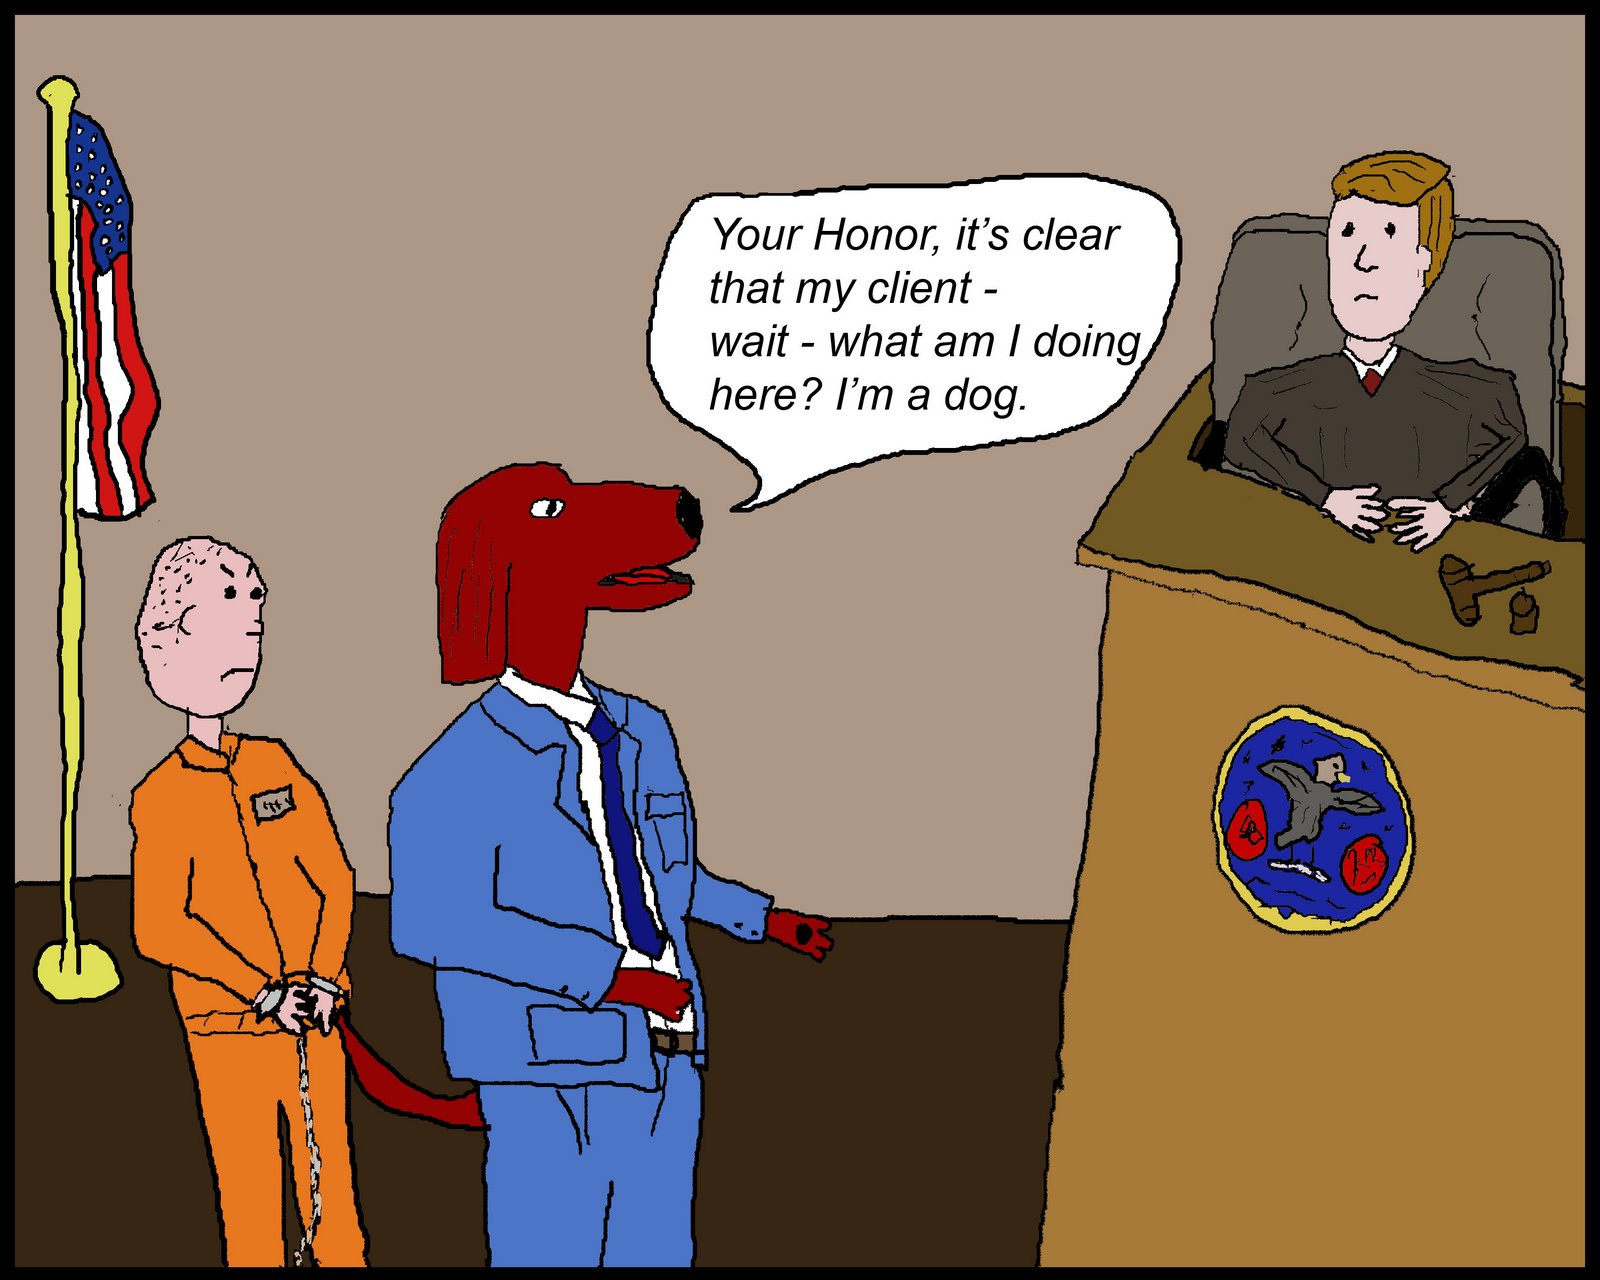 http://2.bp.blogspot.com/_-gDW29ZDzXE/SmfZF4mdHJI/AAAAAAAAACw/_gIQ1QXPadA/s1600/Dog+Lawyer+Cartoon.jpg